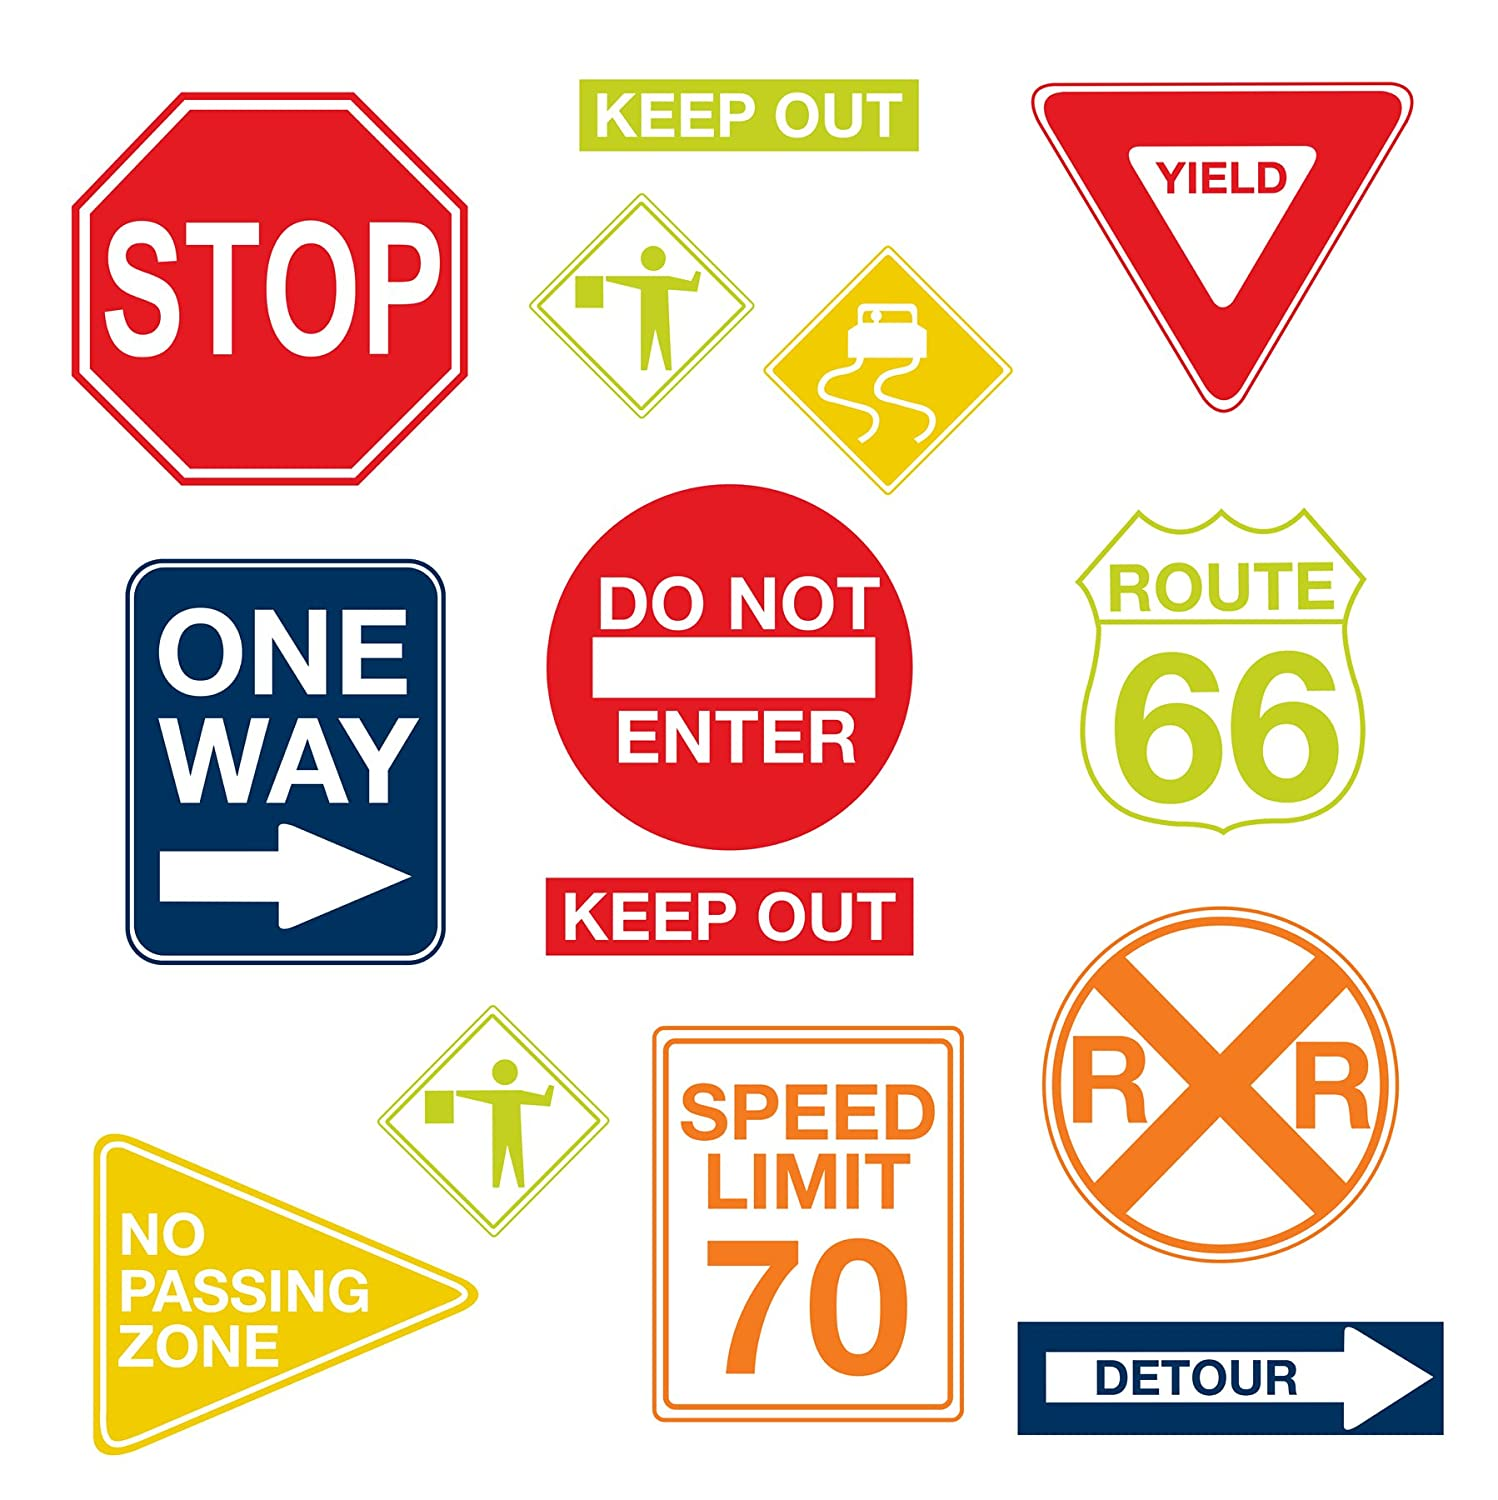 Wall PopsWPK0617 Road Signs Wall Decals,17. 25-inch by 39-inch, Two sheets